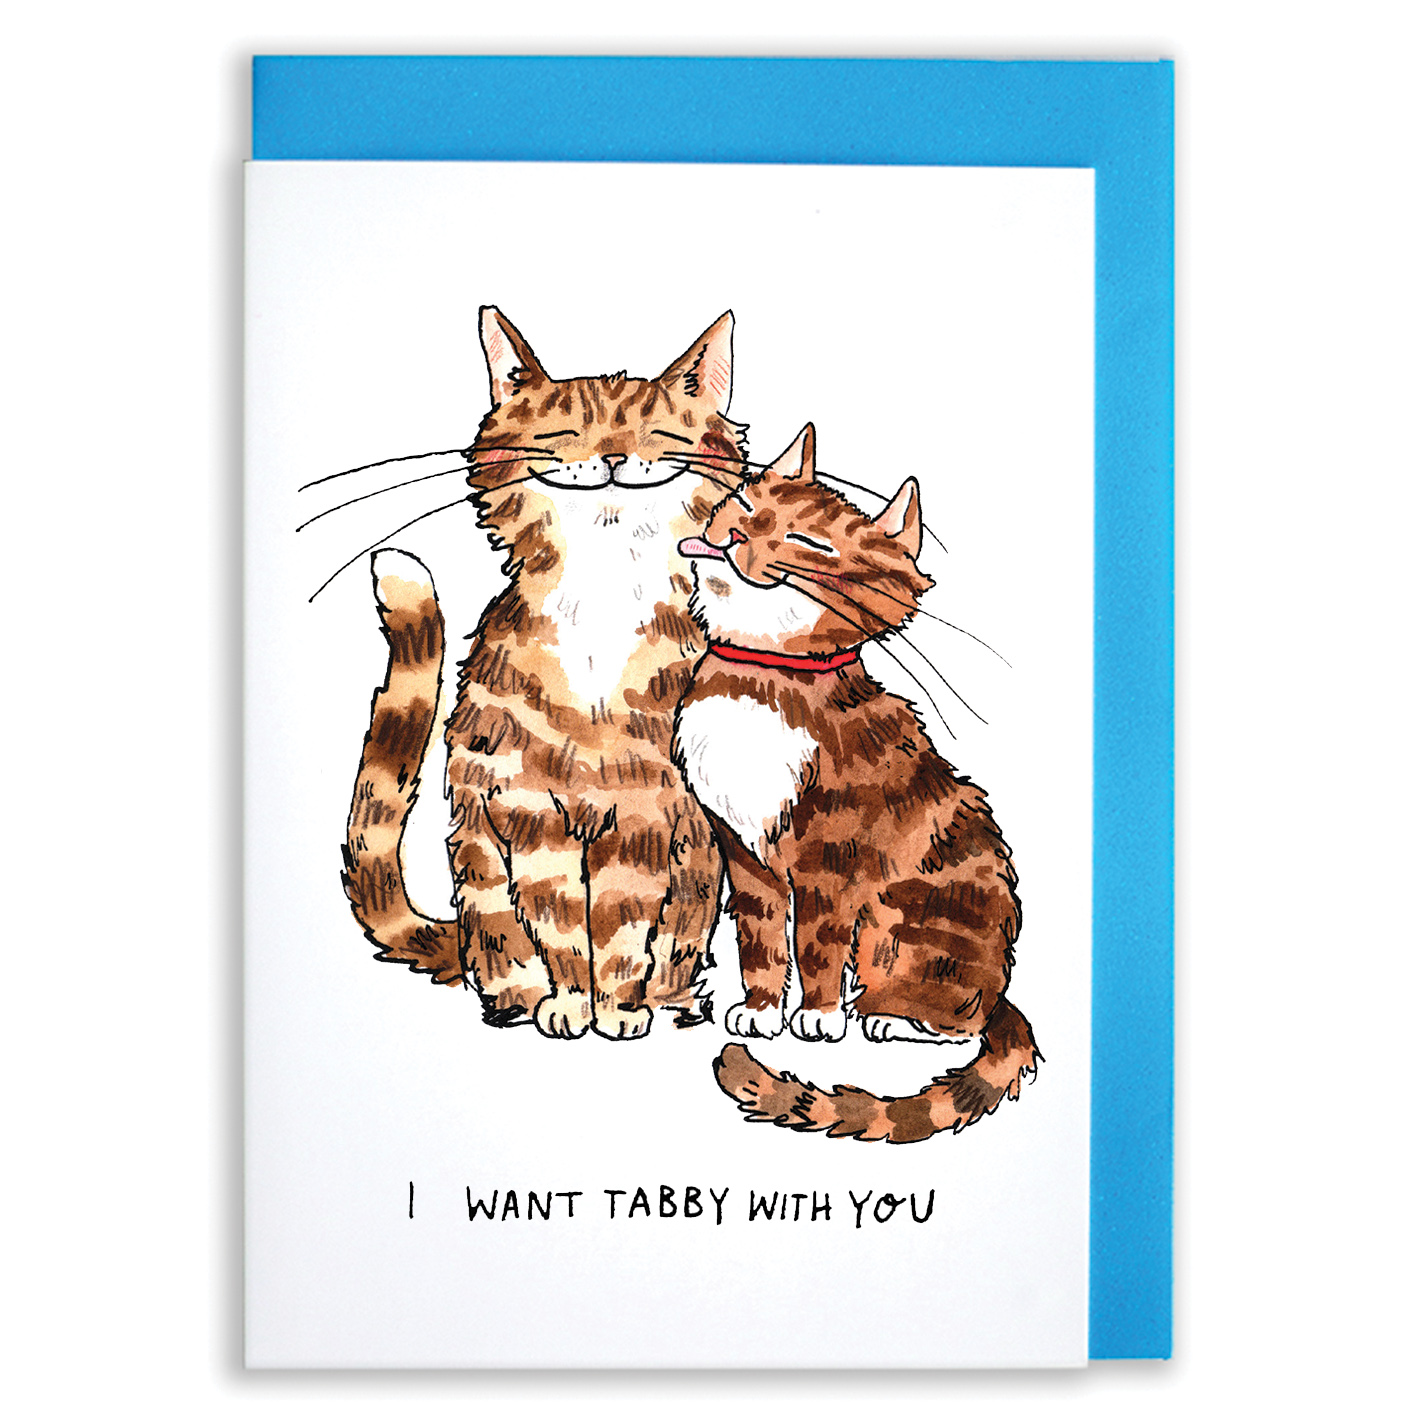 Want-Tabby-With-You_-Cat-pun-romantic-greetings-card_SM70_WB